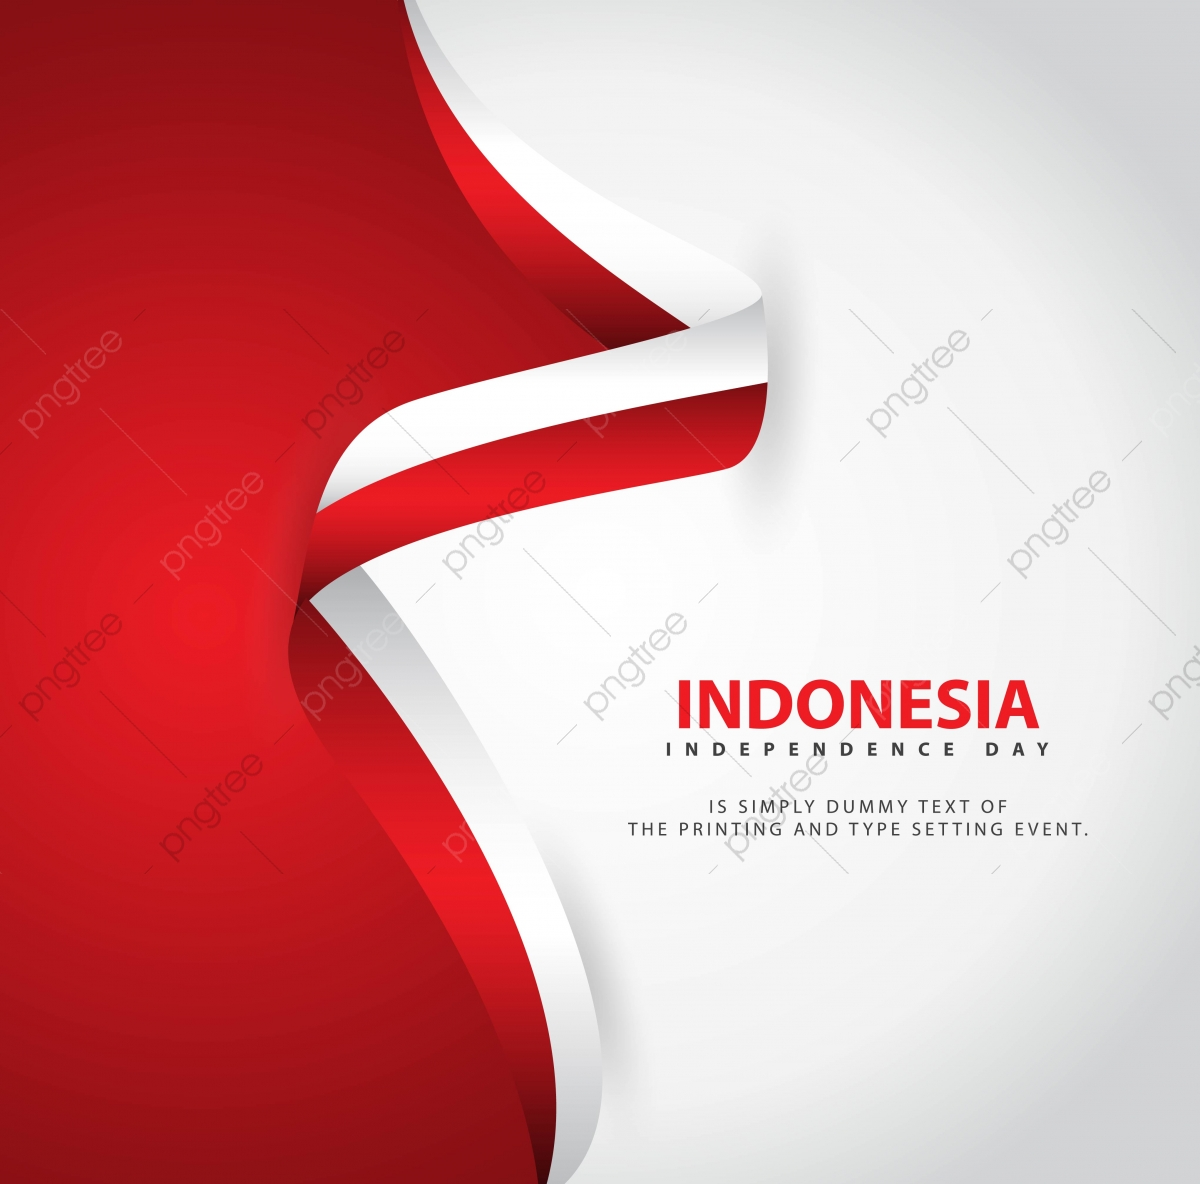 indonesia independence day vector template design illustration template icons day icons indonesia png and vector with transparent background for free download https pngtree com freepng indonesia independence day vector template design illustration 4033669 html